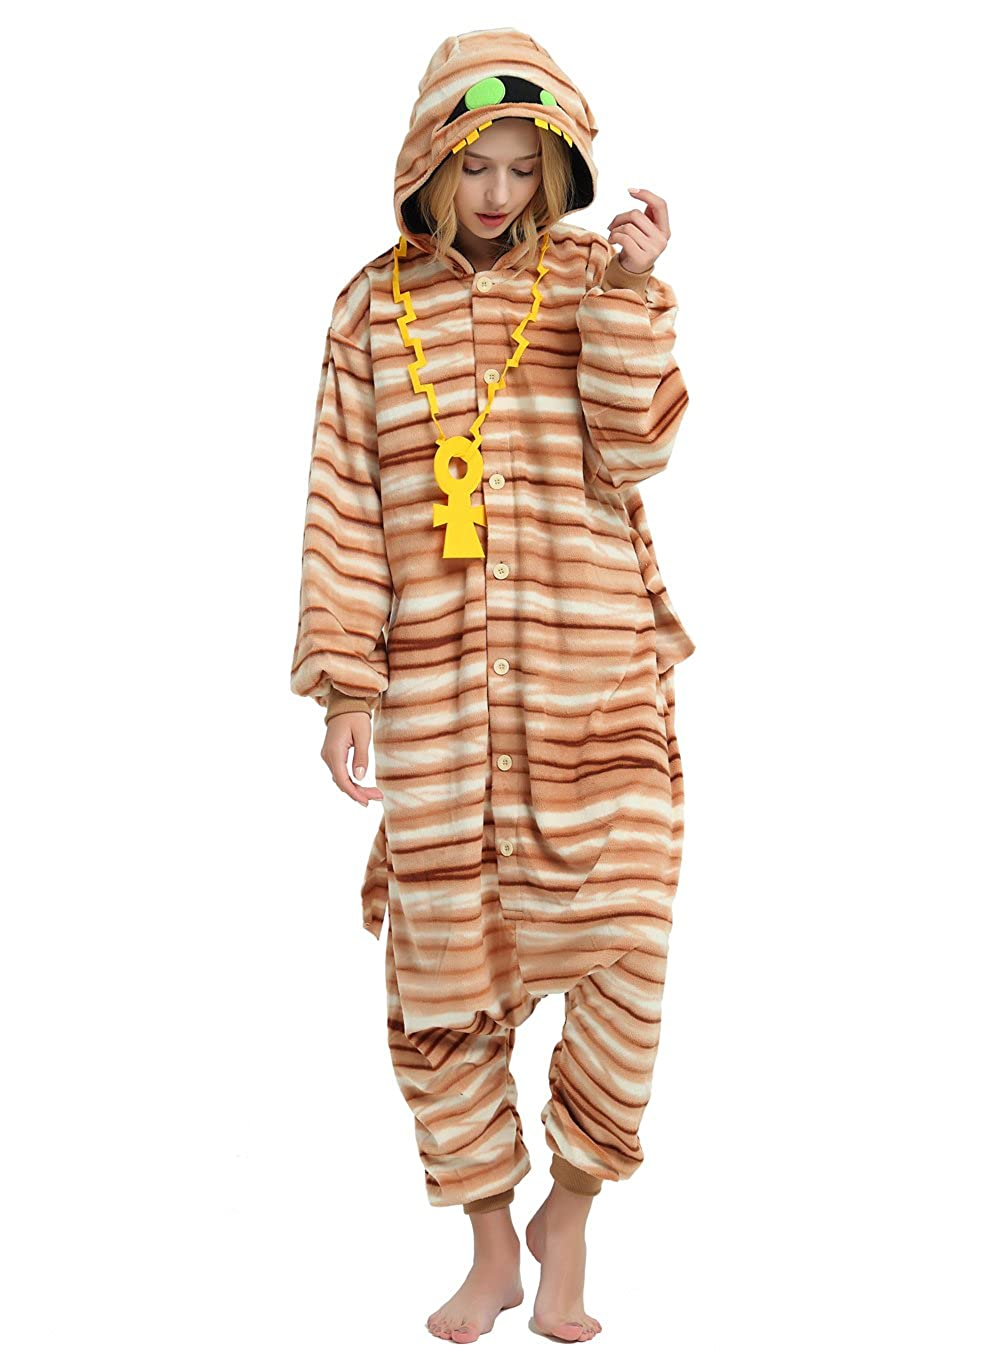 e536d7769 Top 10 wholesale Where To Buy Halloween Costumes - Chinabrands.com